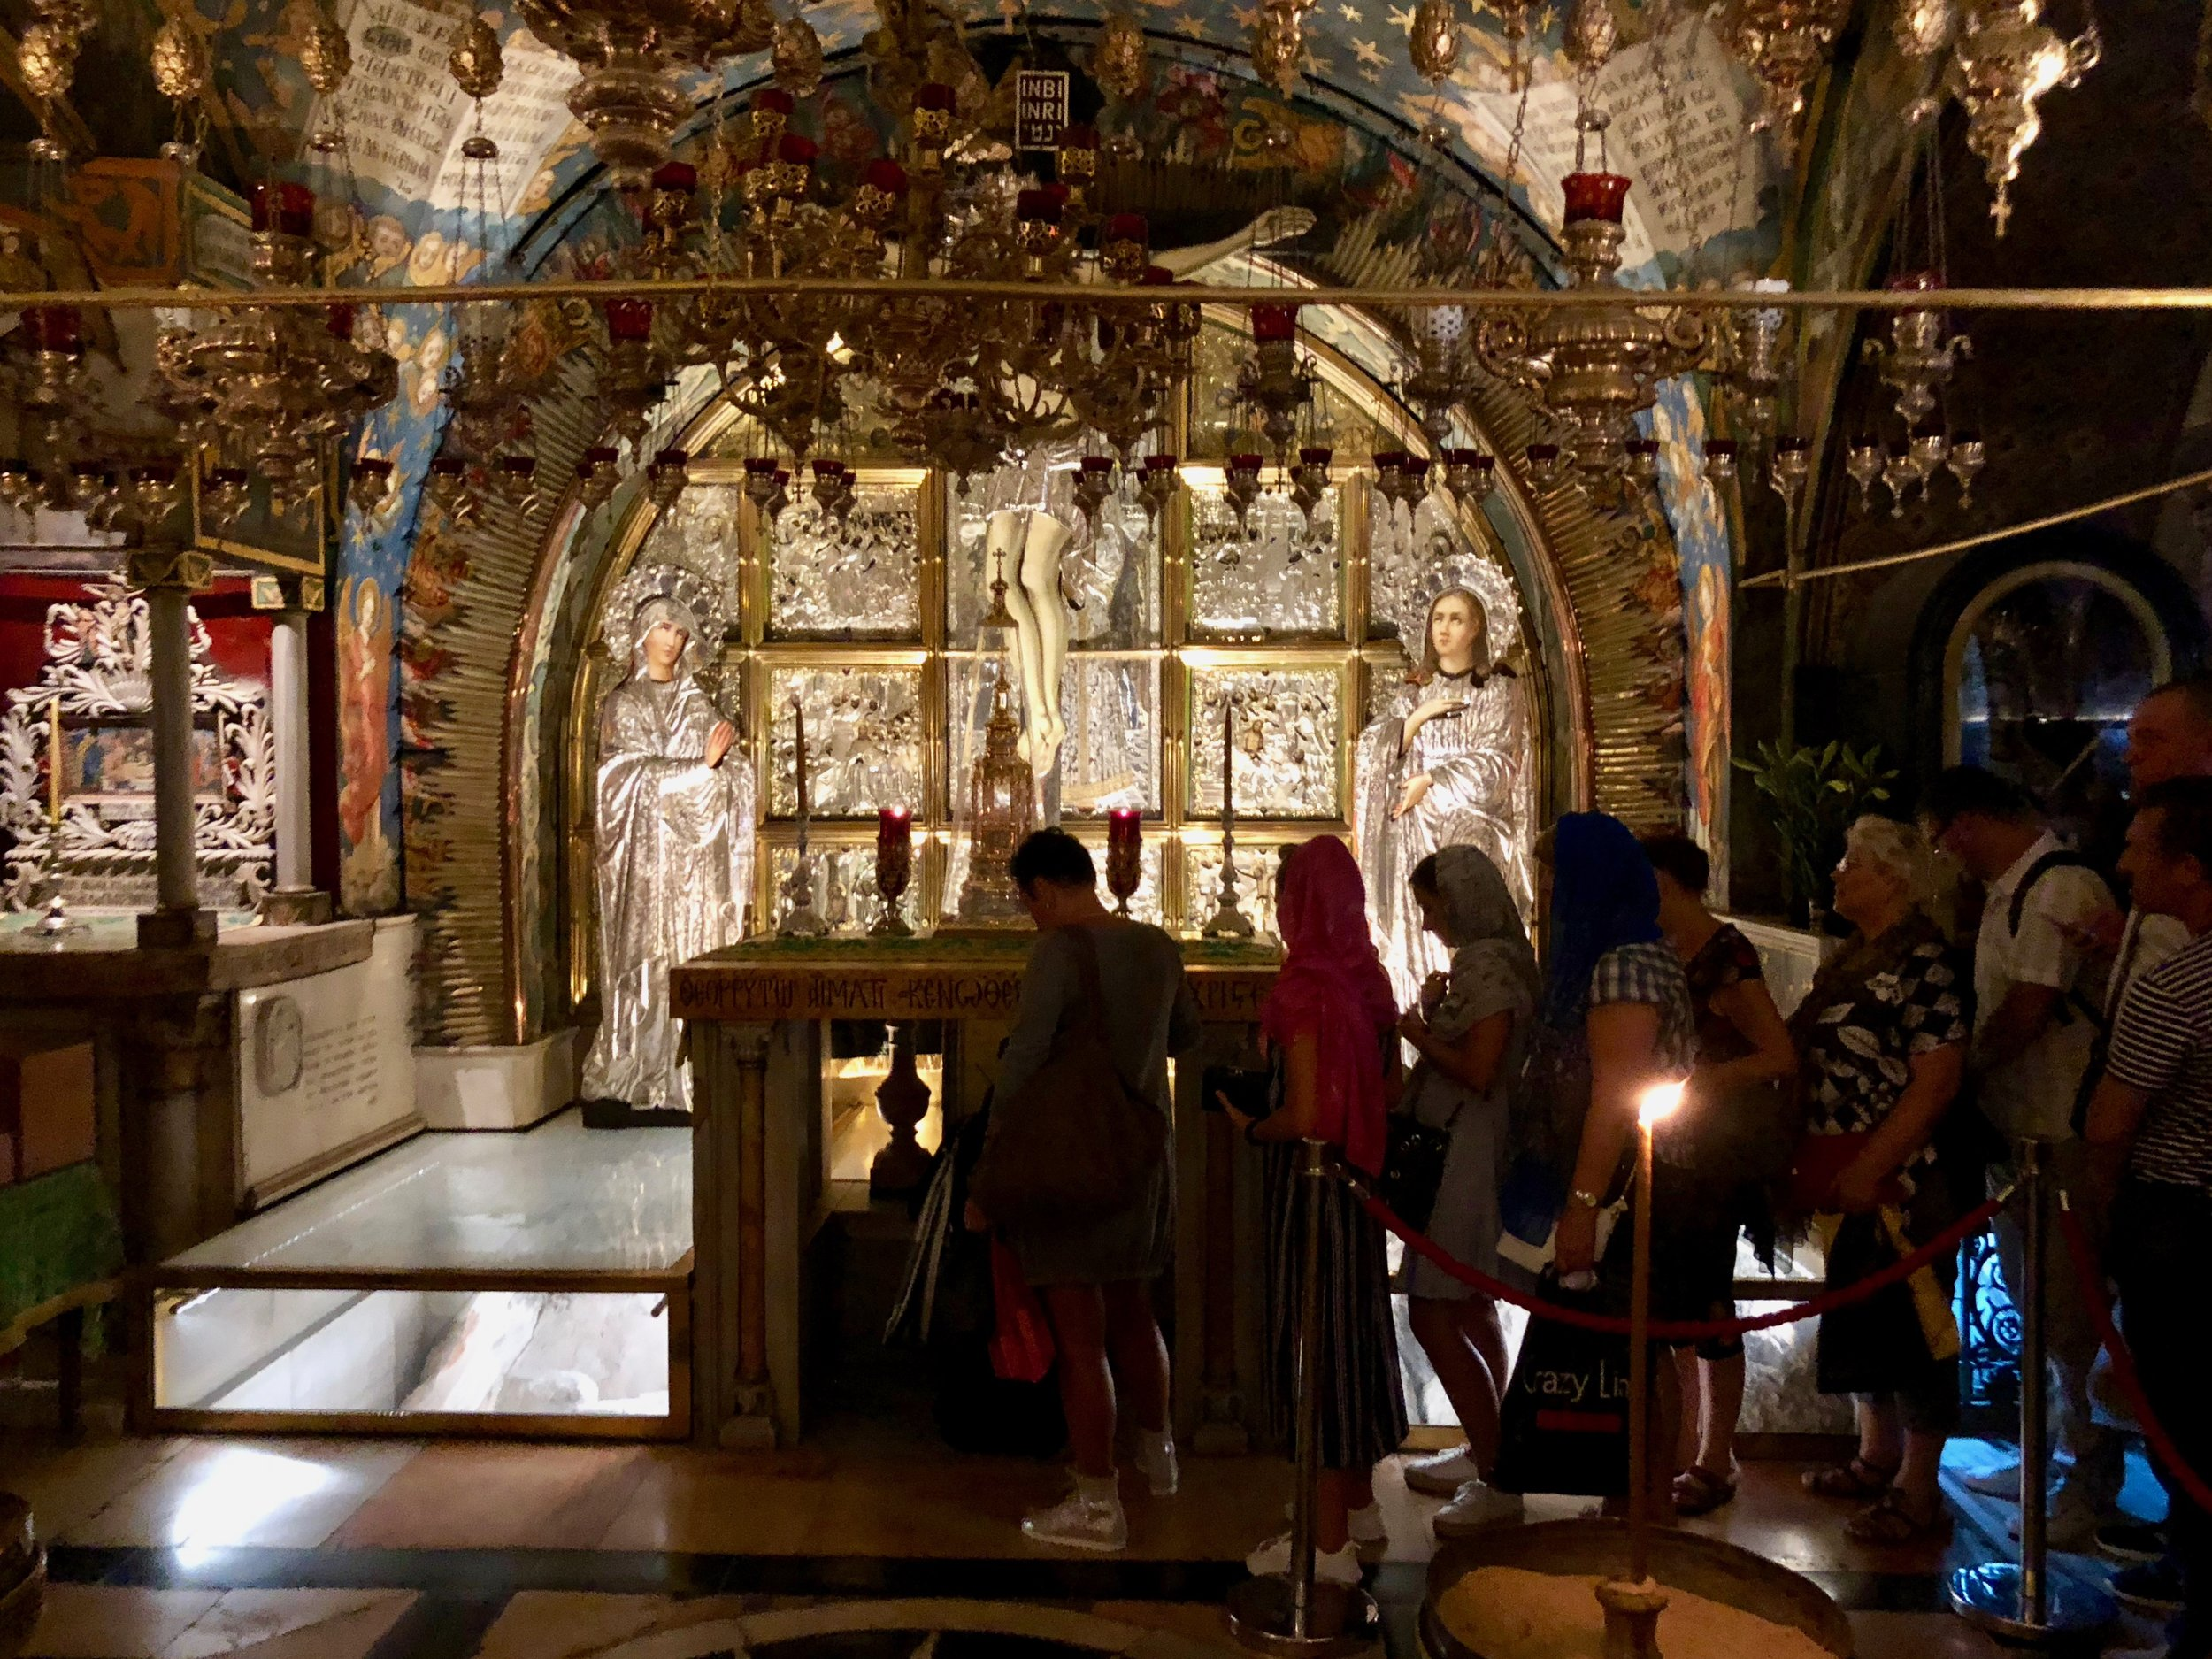 Site where Jesus was said to be crucified in the Church of the Holy Sepulchre.